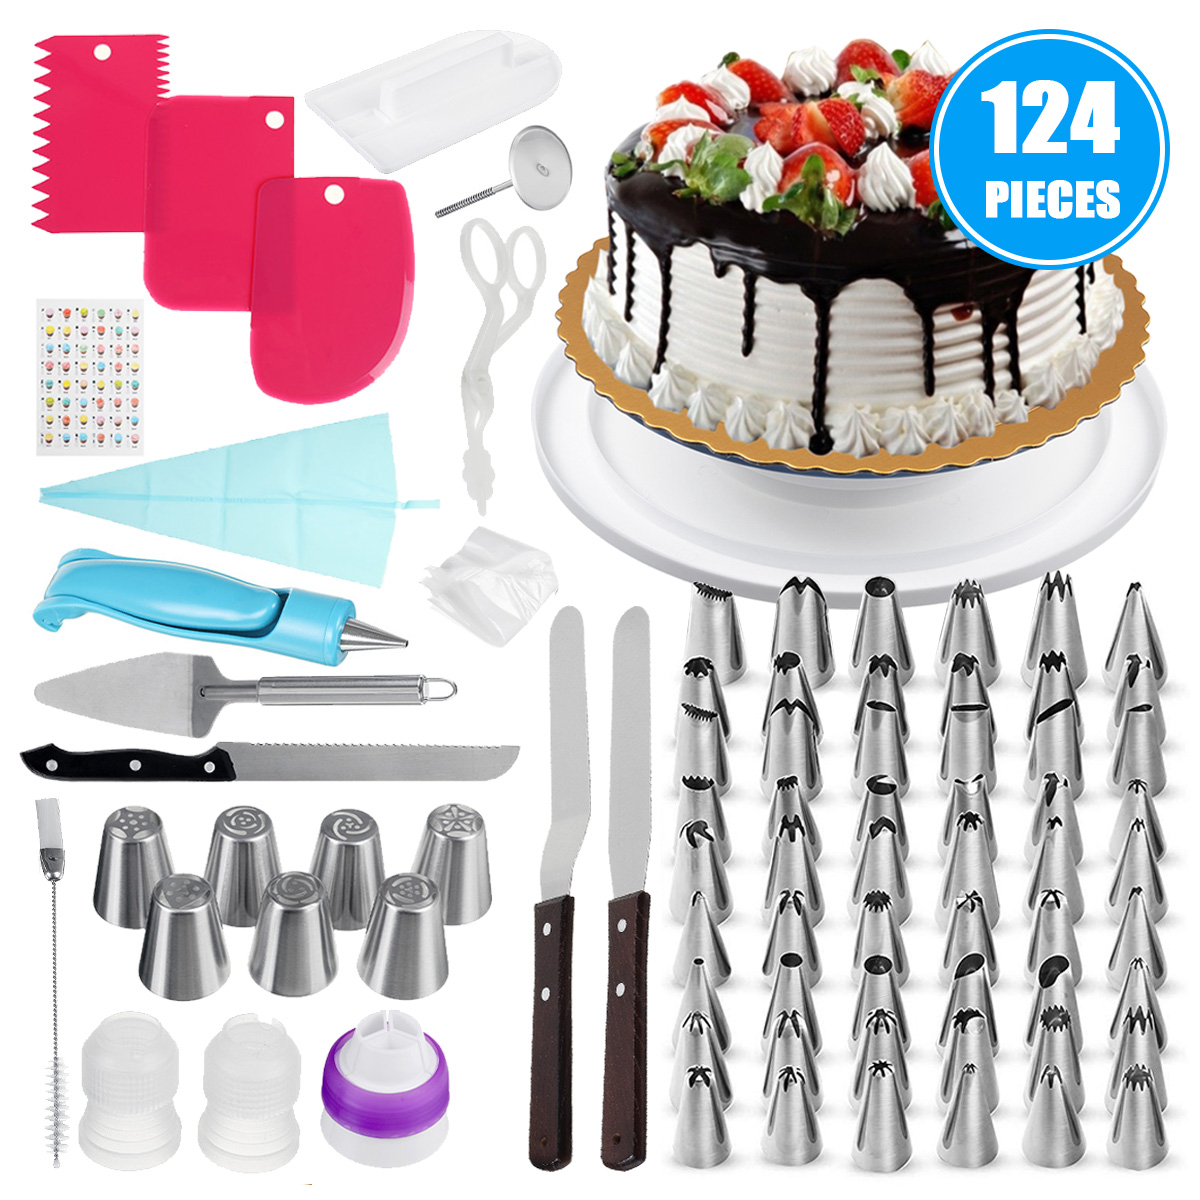 Cake Baking Decorating Kit Cake Decorating Supplies Set Cake Decorating Tip Set with 20 Stainless Icing Tips Piping Nozzles Cream Squeeze Bag Tool